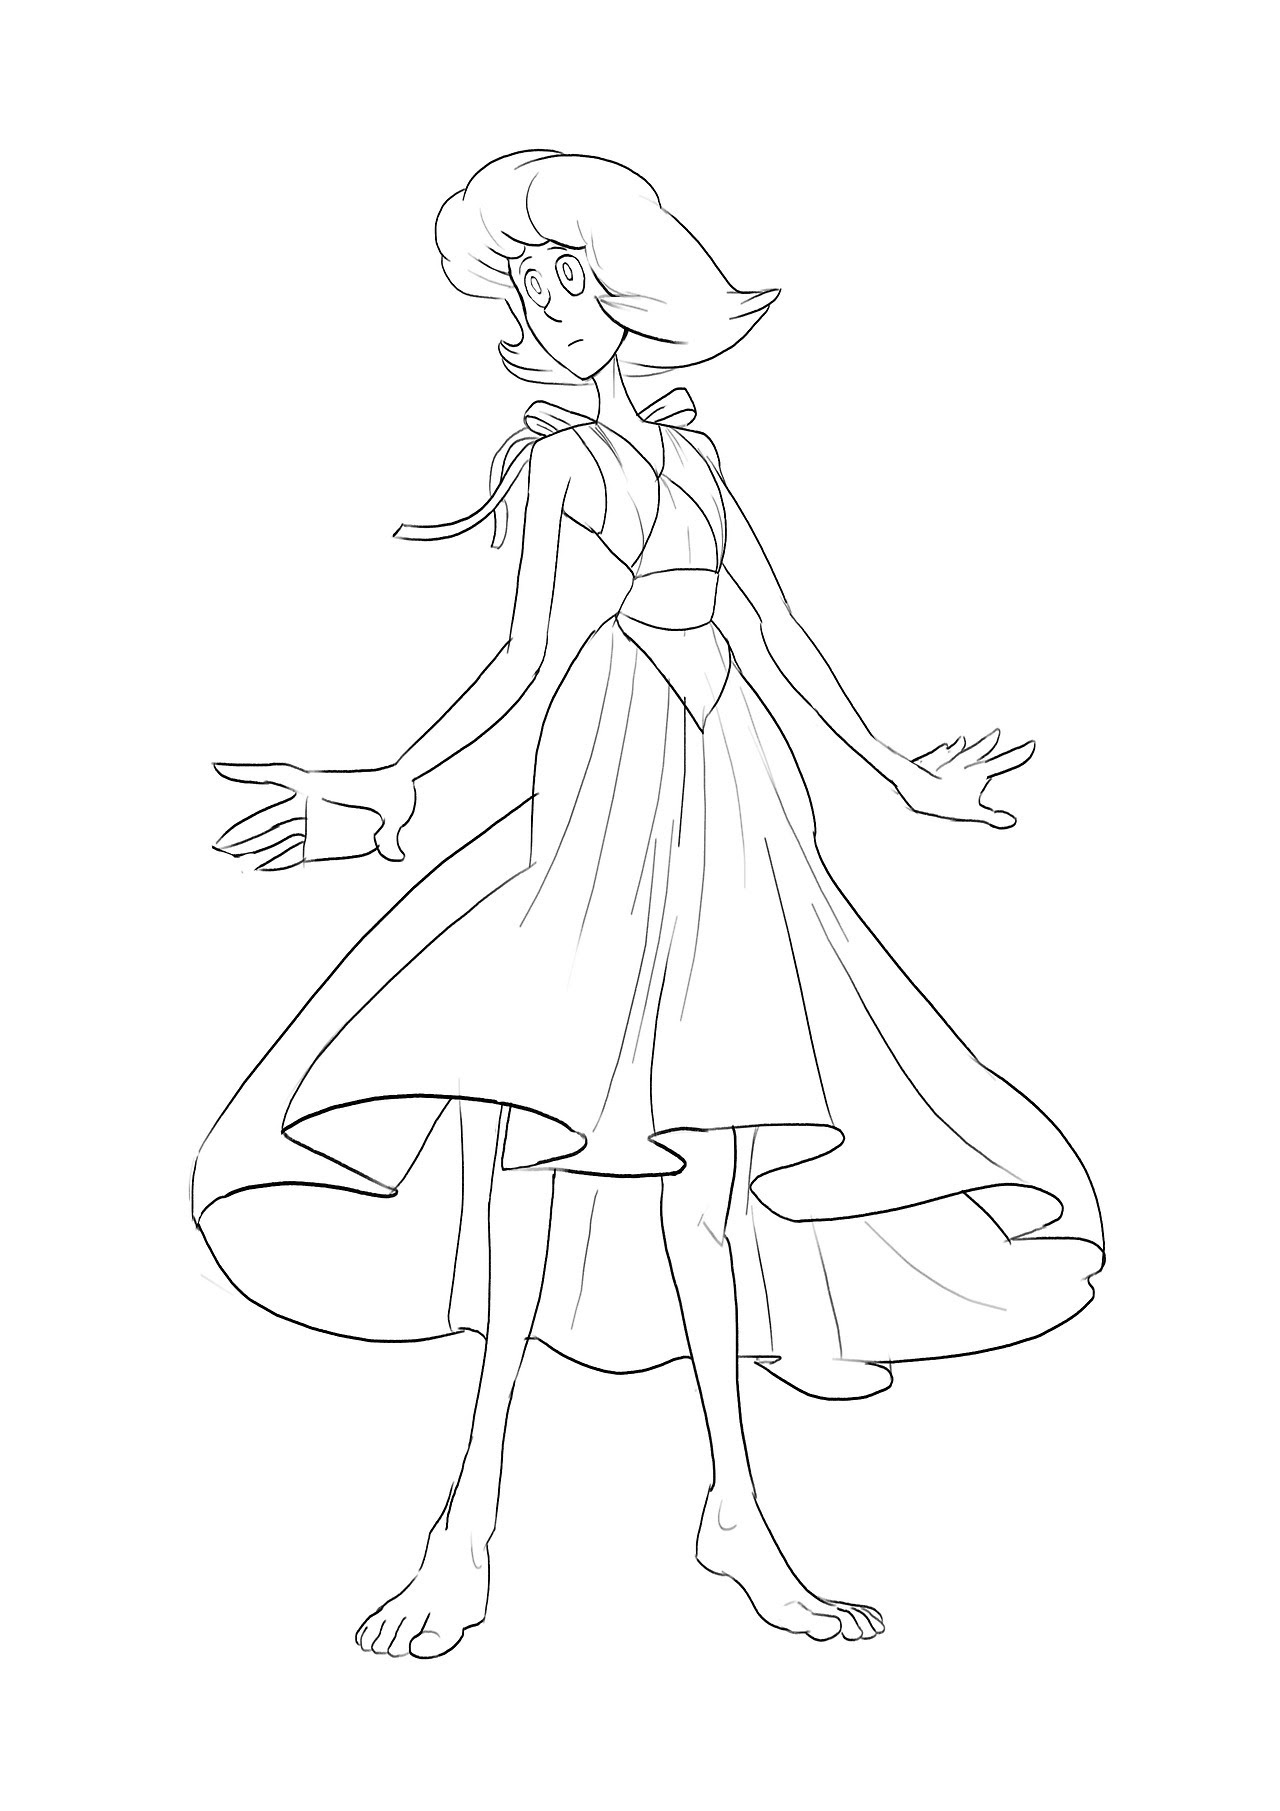 A little drawing of lapis. Just to mix things up a little.